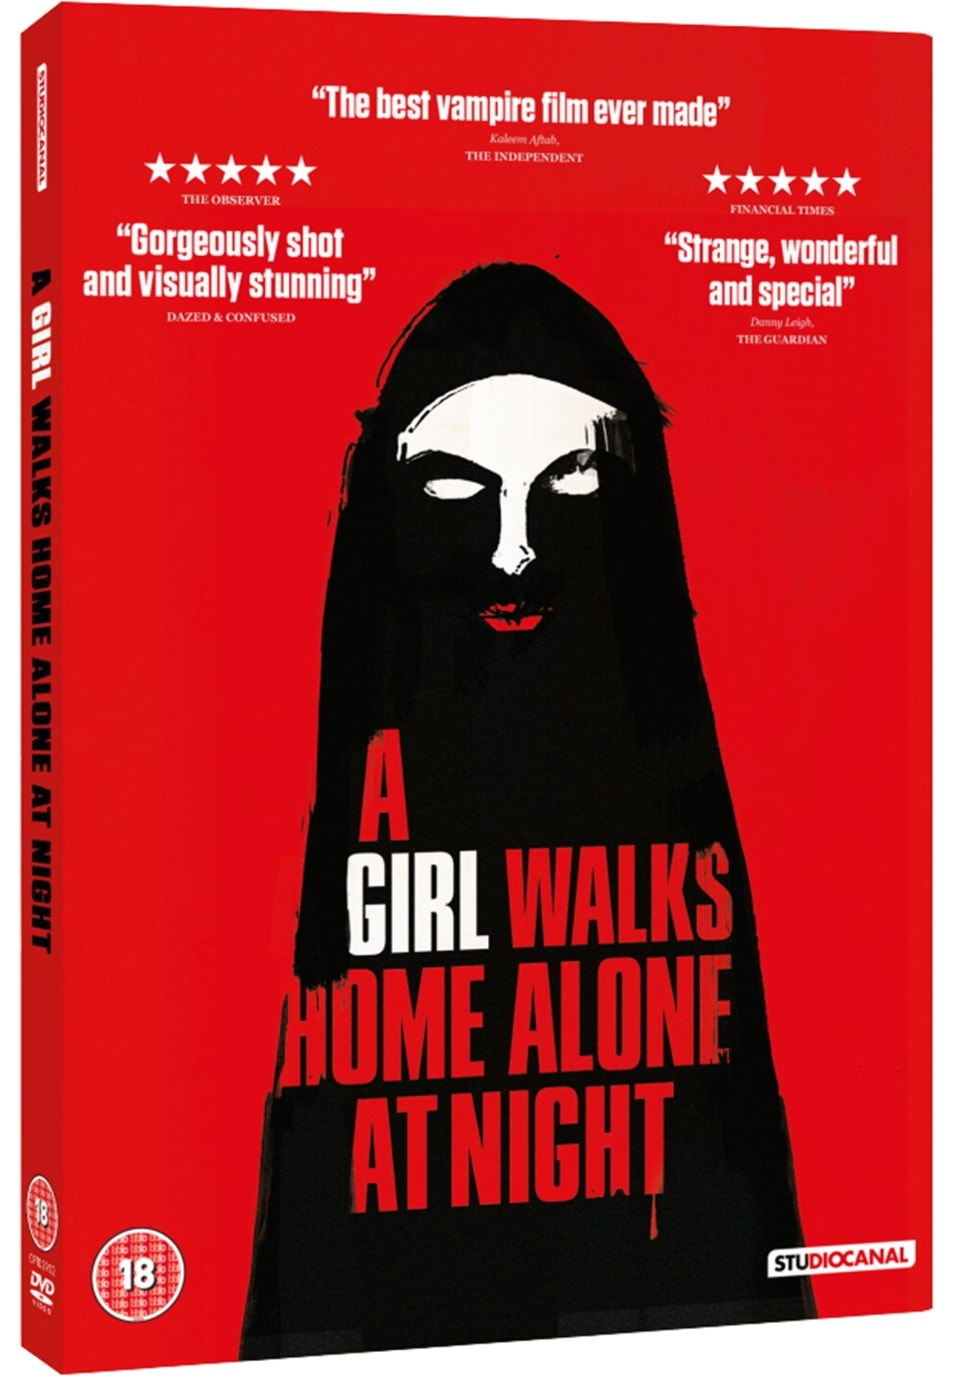 A Girl Walks Home Alone at Night - 2